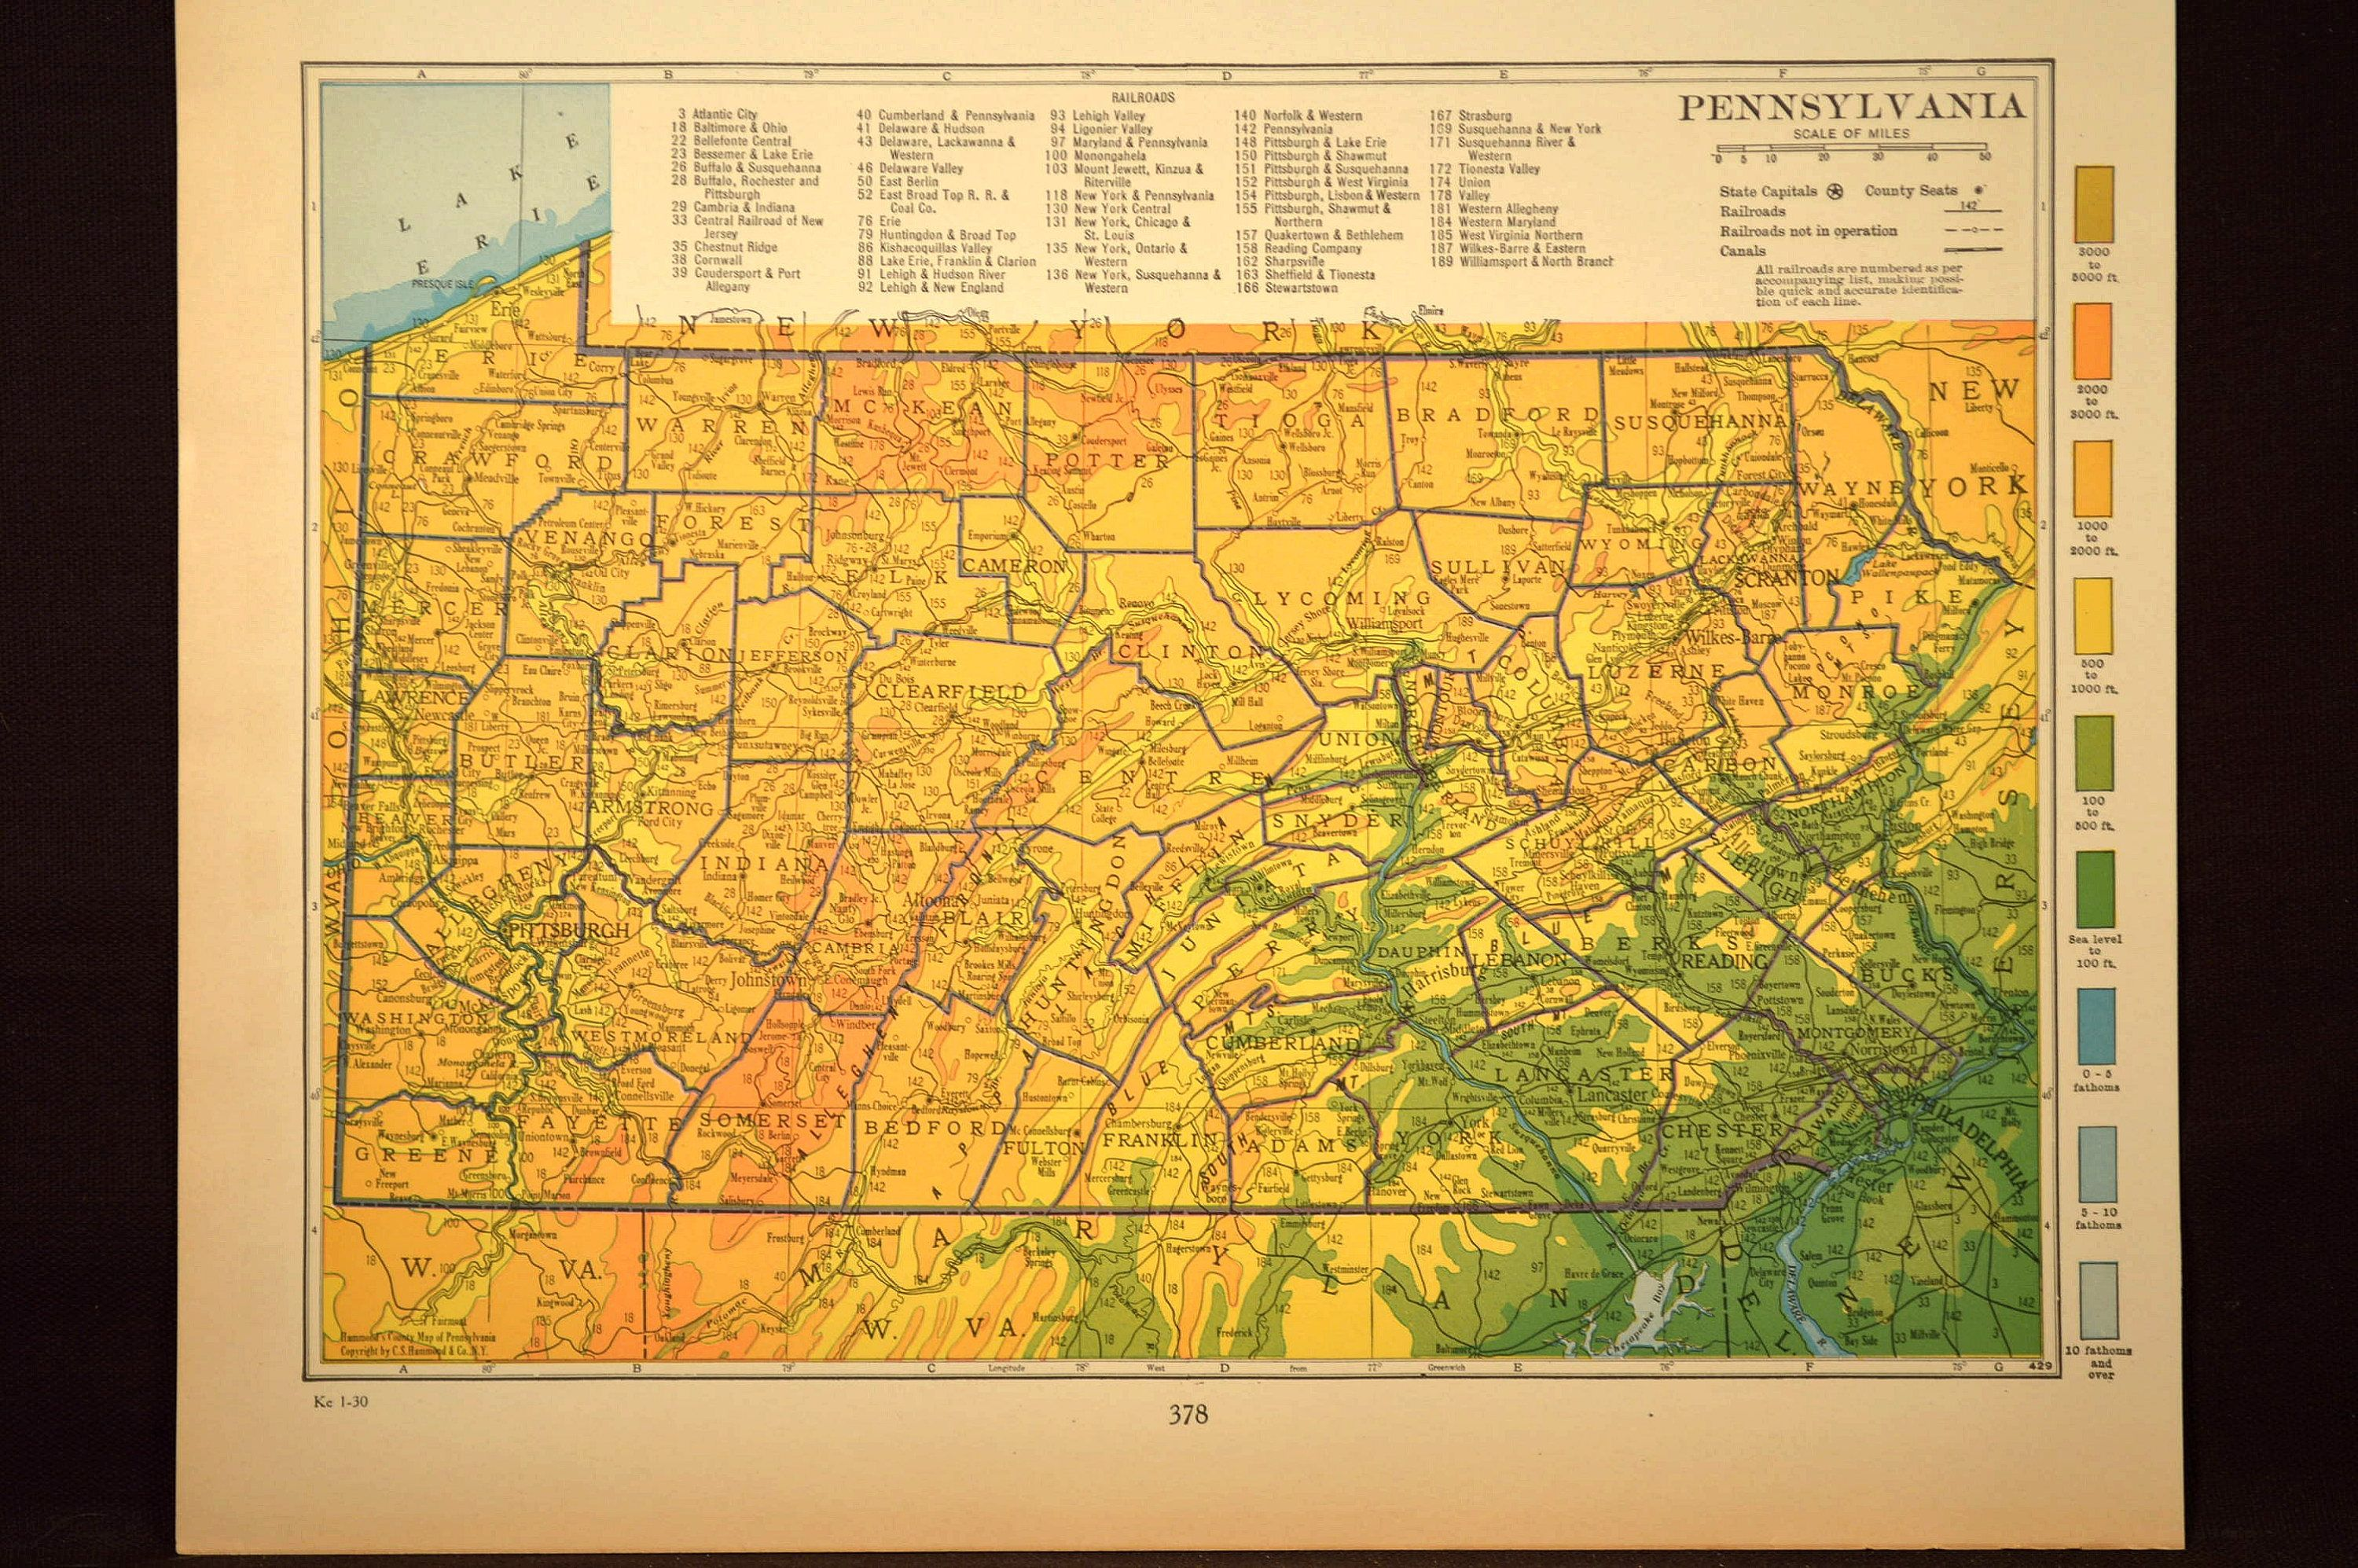 Pennsylvania Map Pennsylvania Topographic Map Colorful Colored